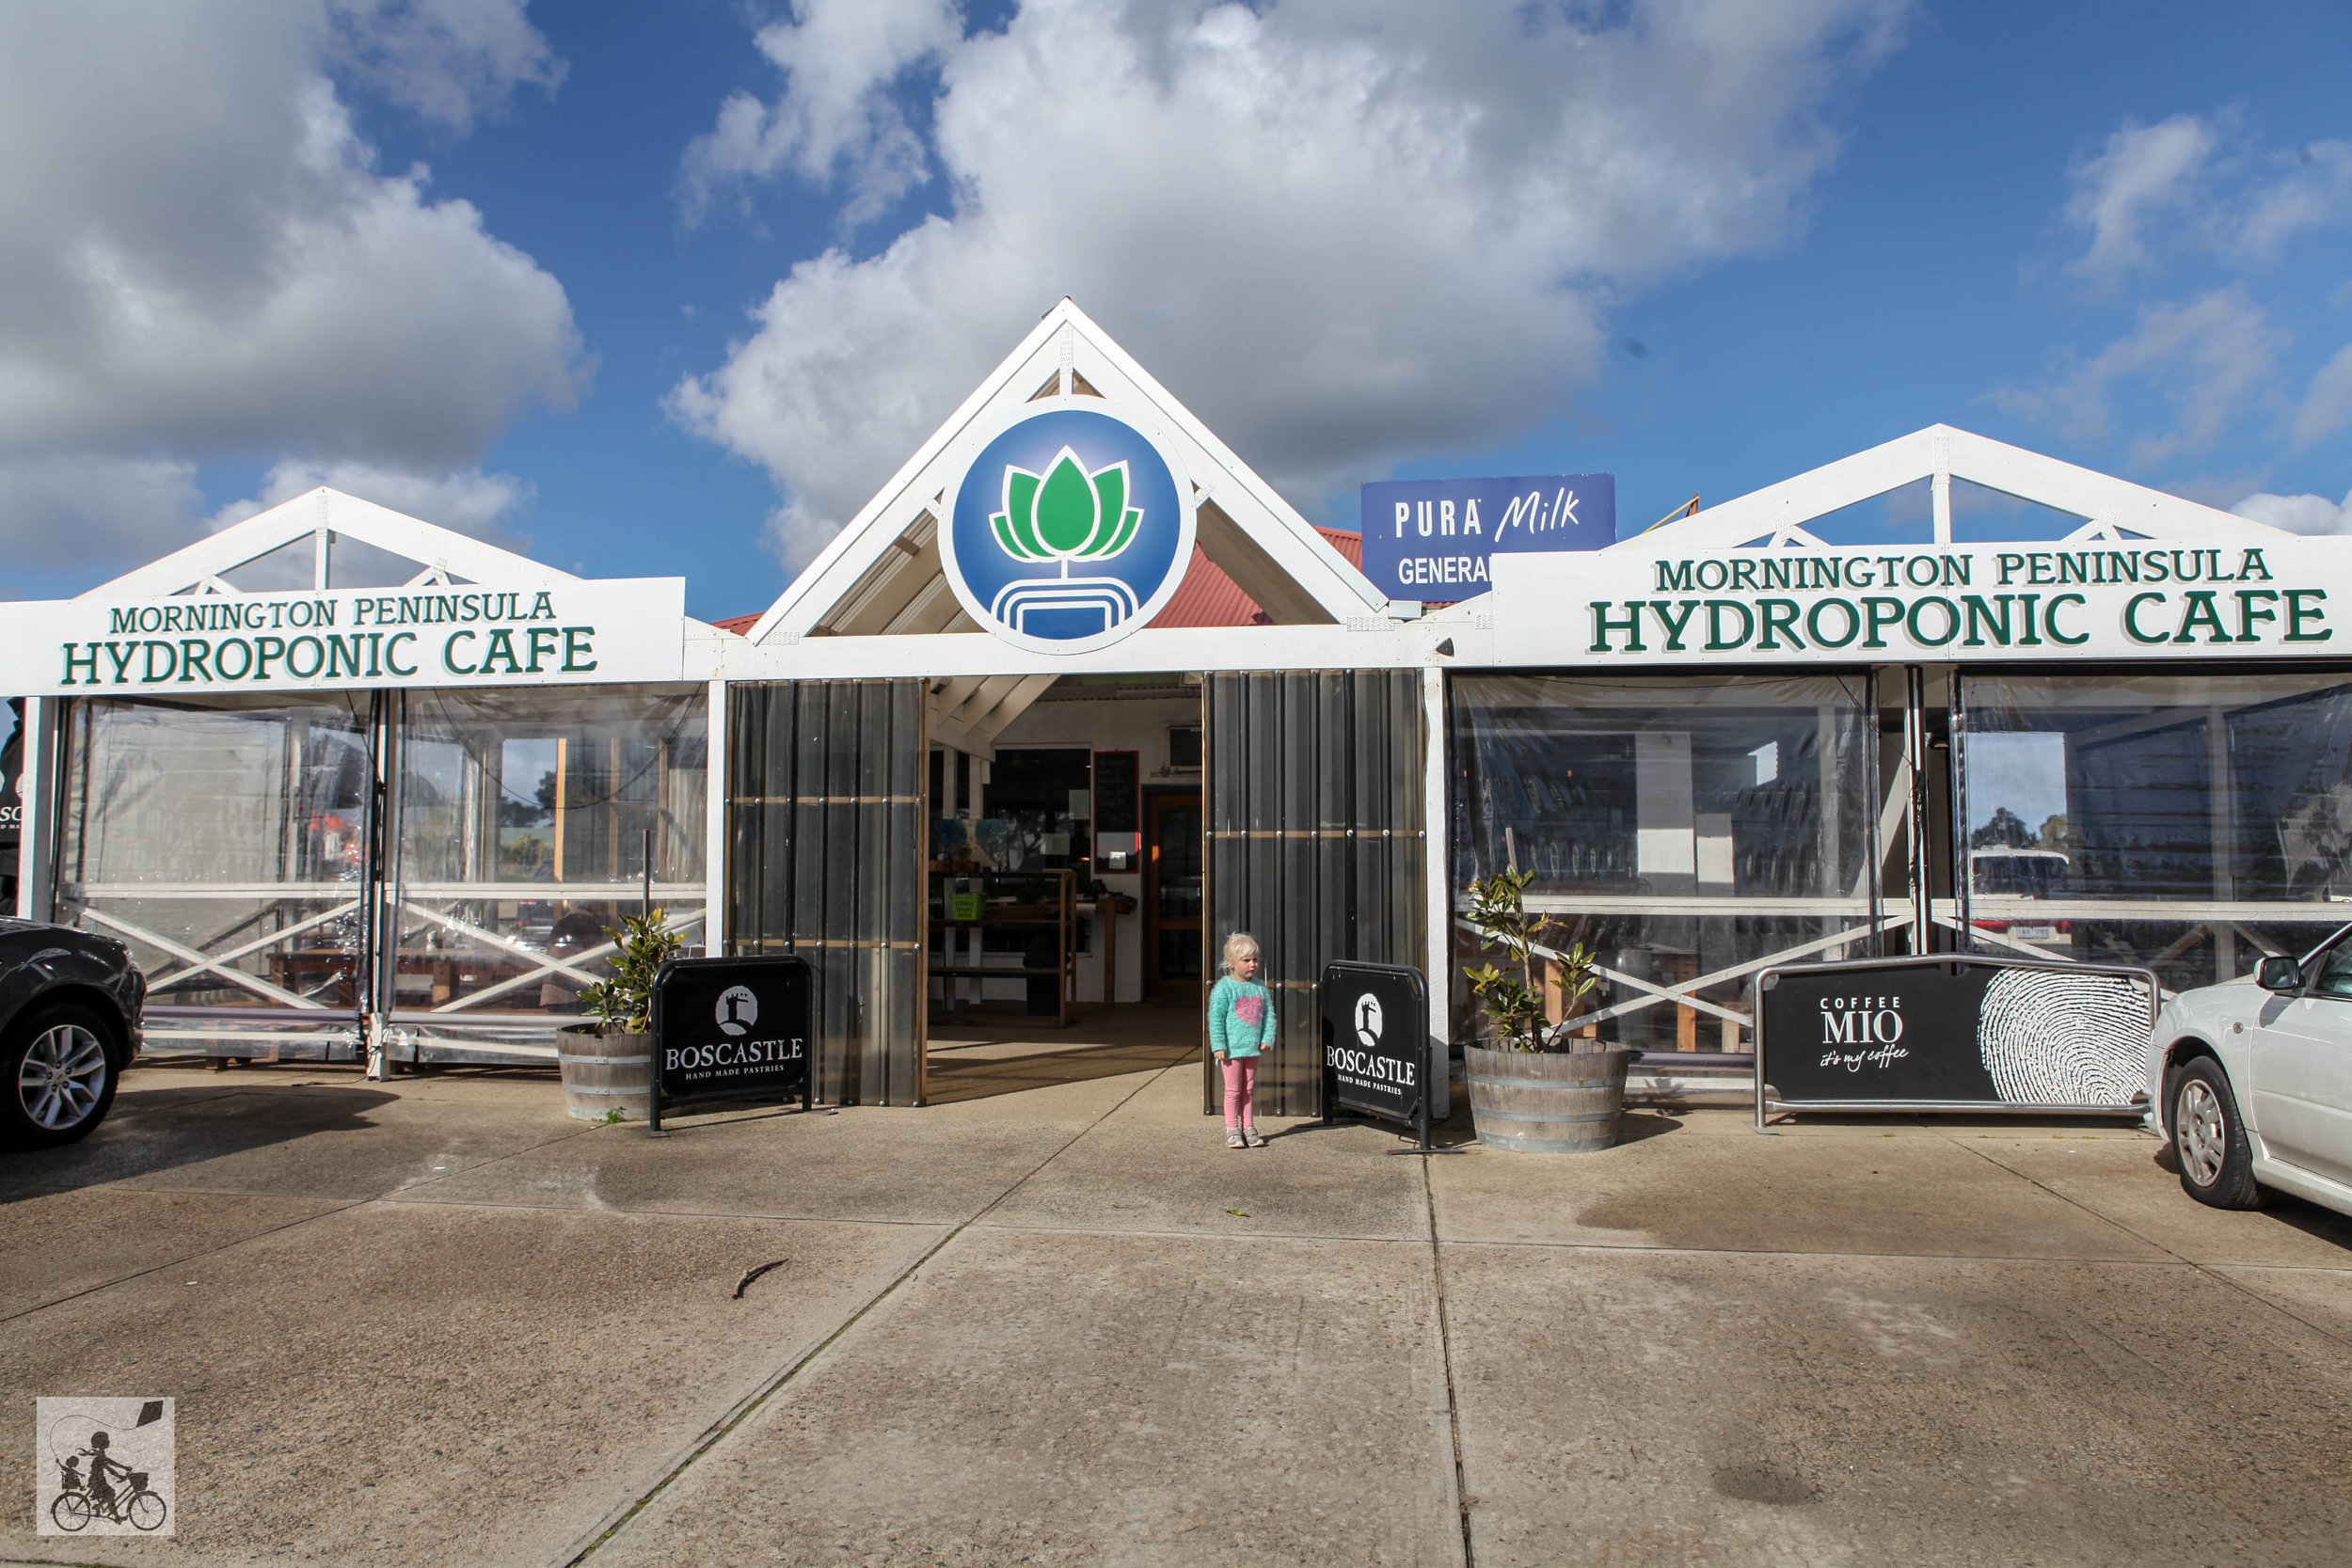 mornington hydroponic cafe - mamma knows south (1 of 24).jpg